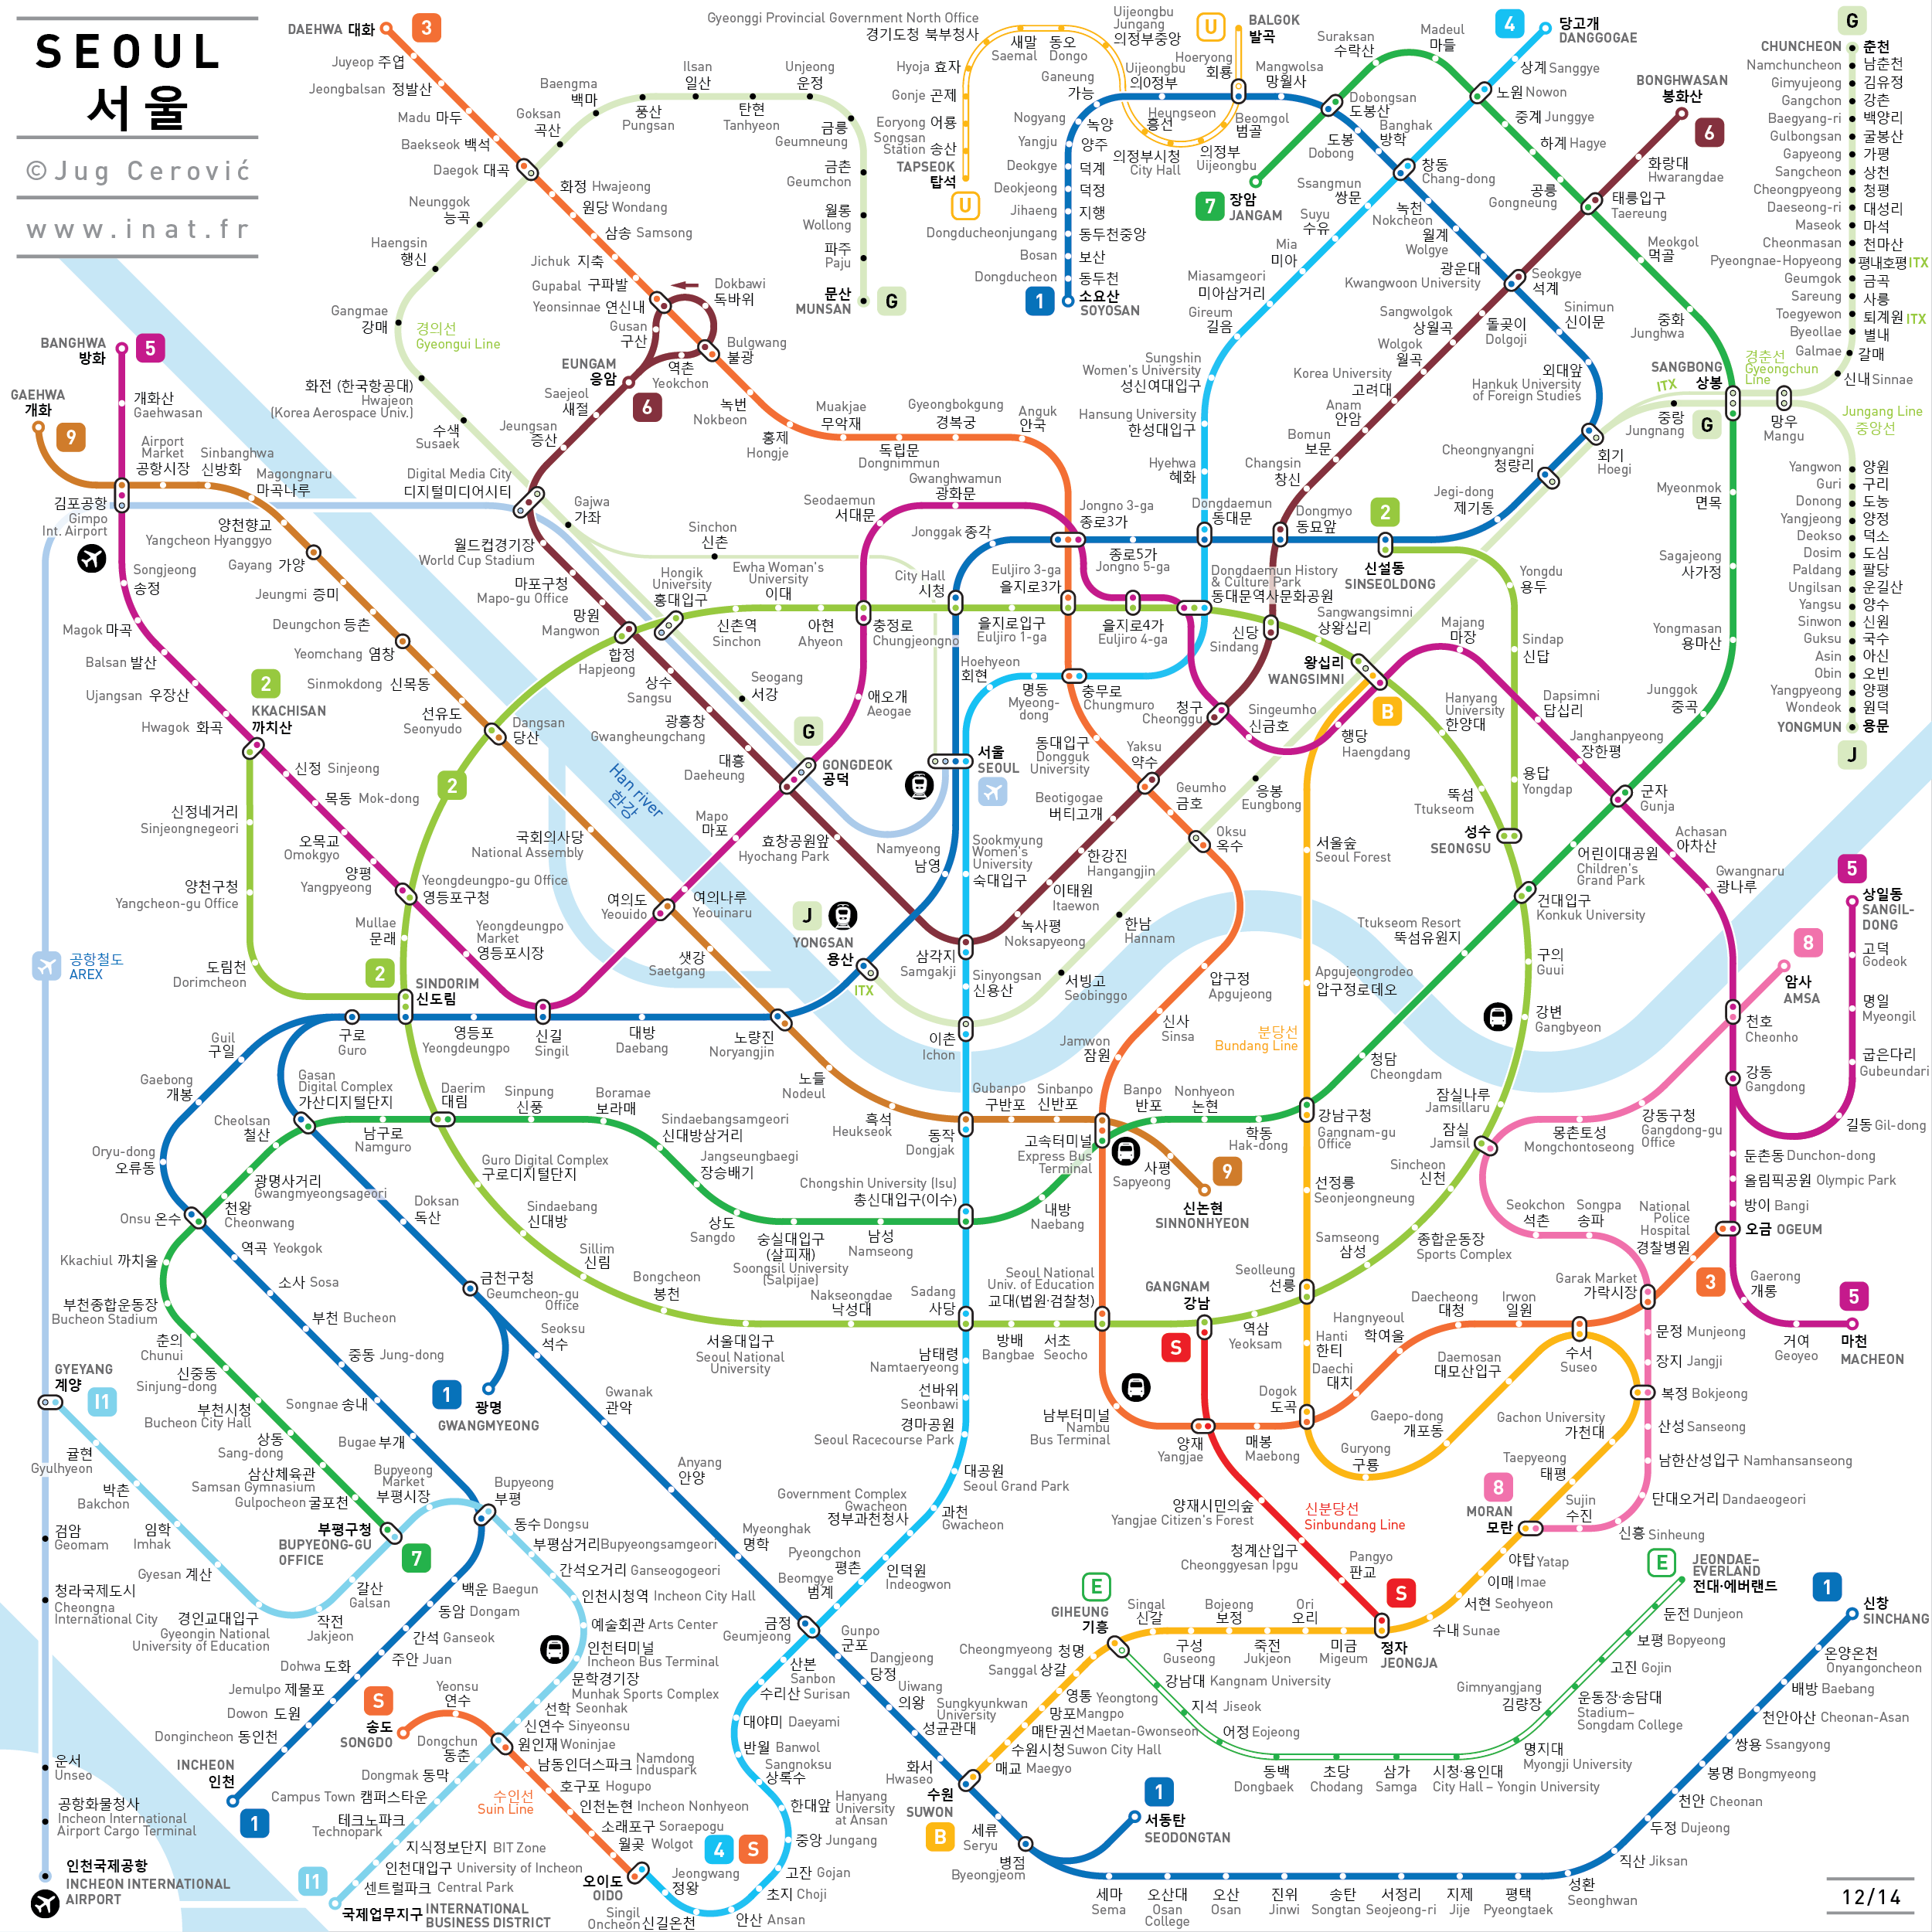 Seoul Metropolitan Subway Map Download